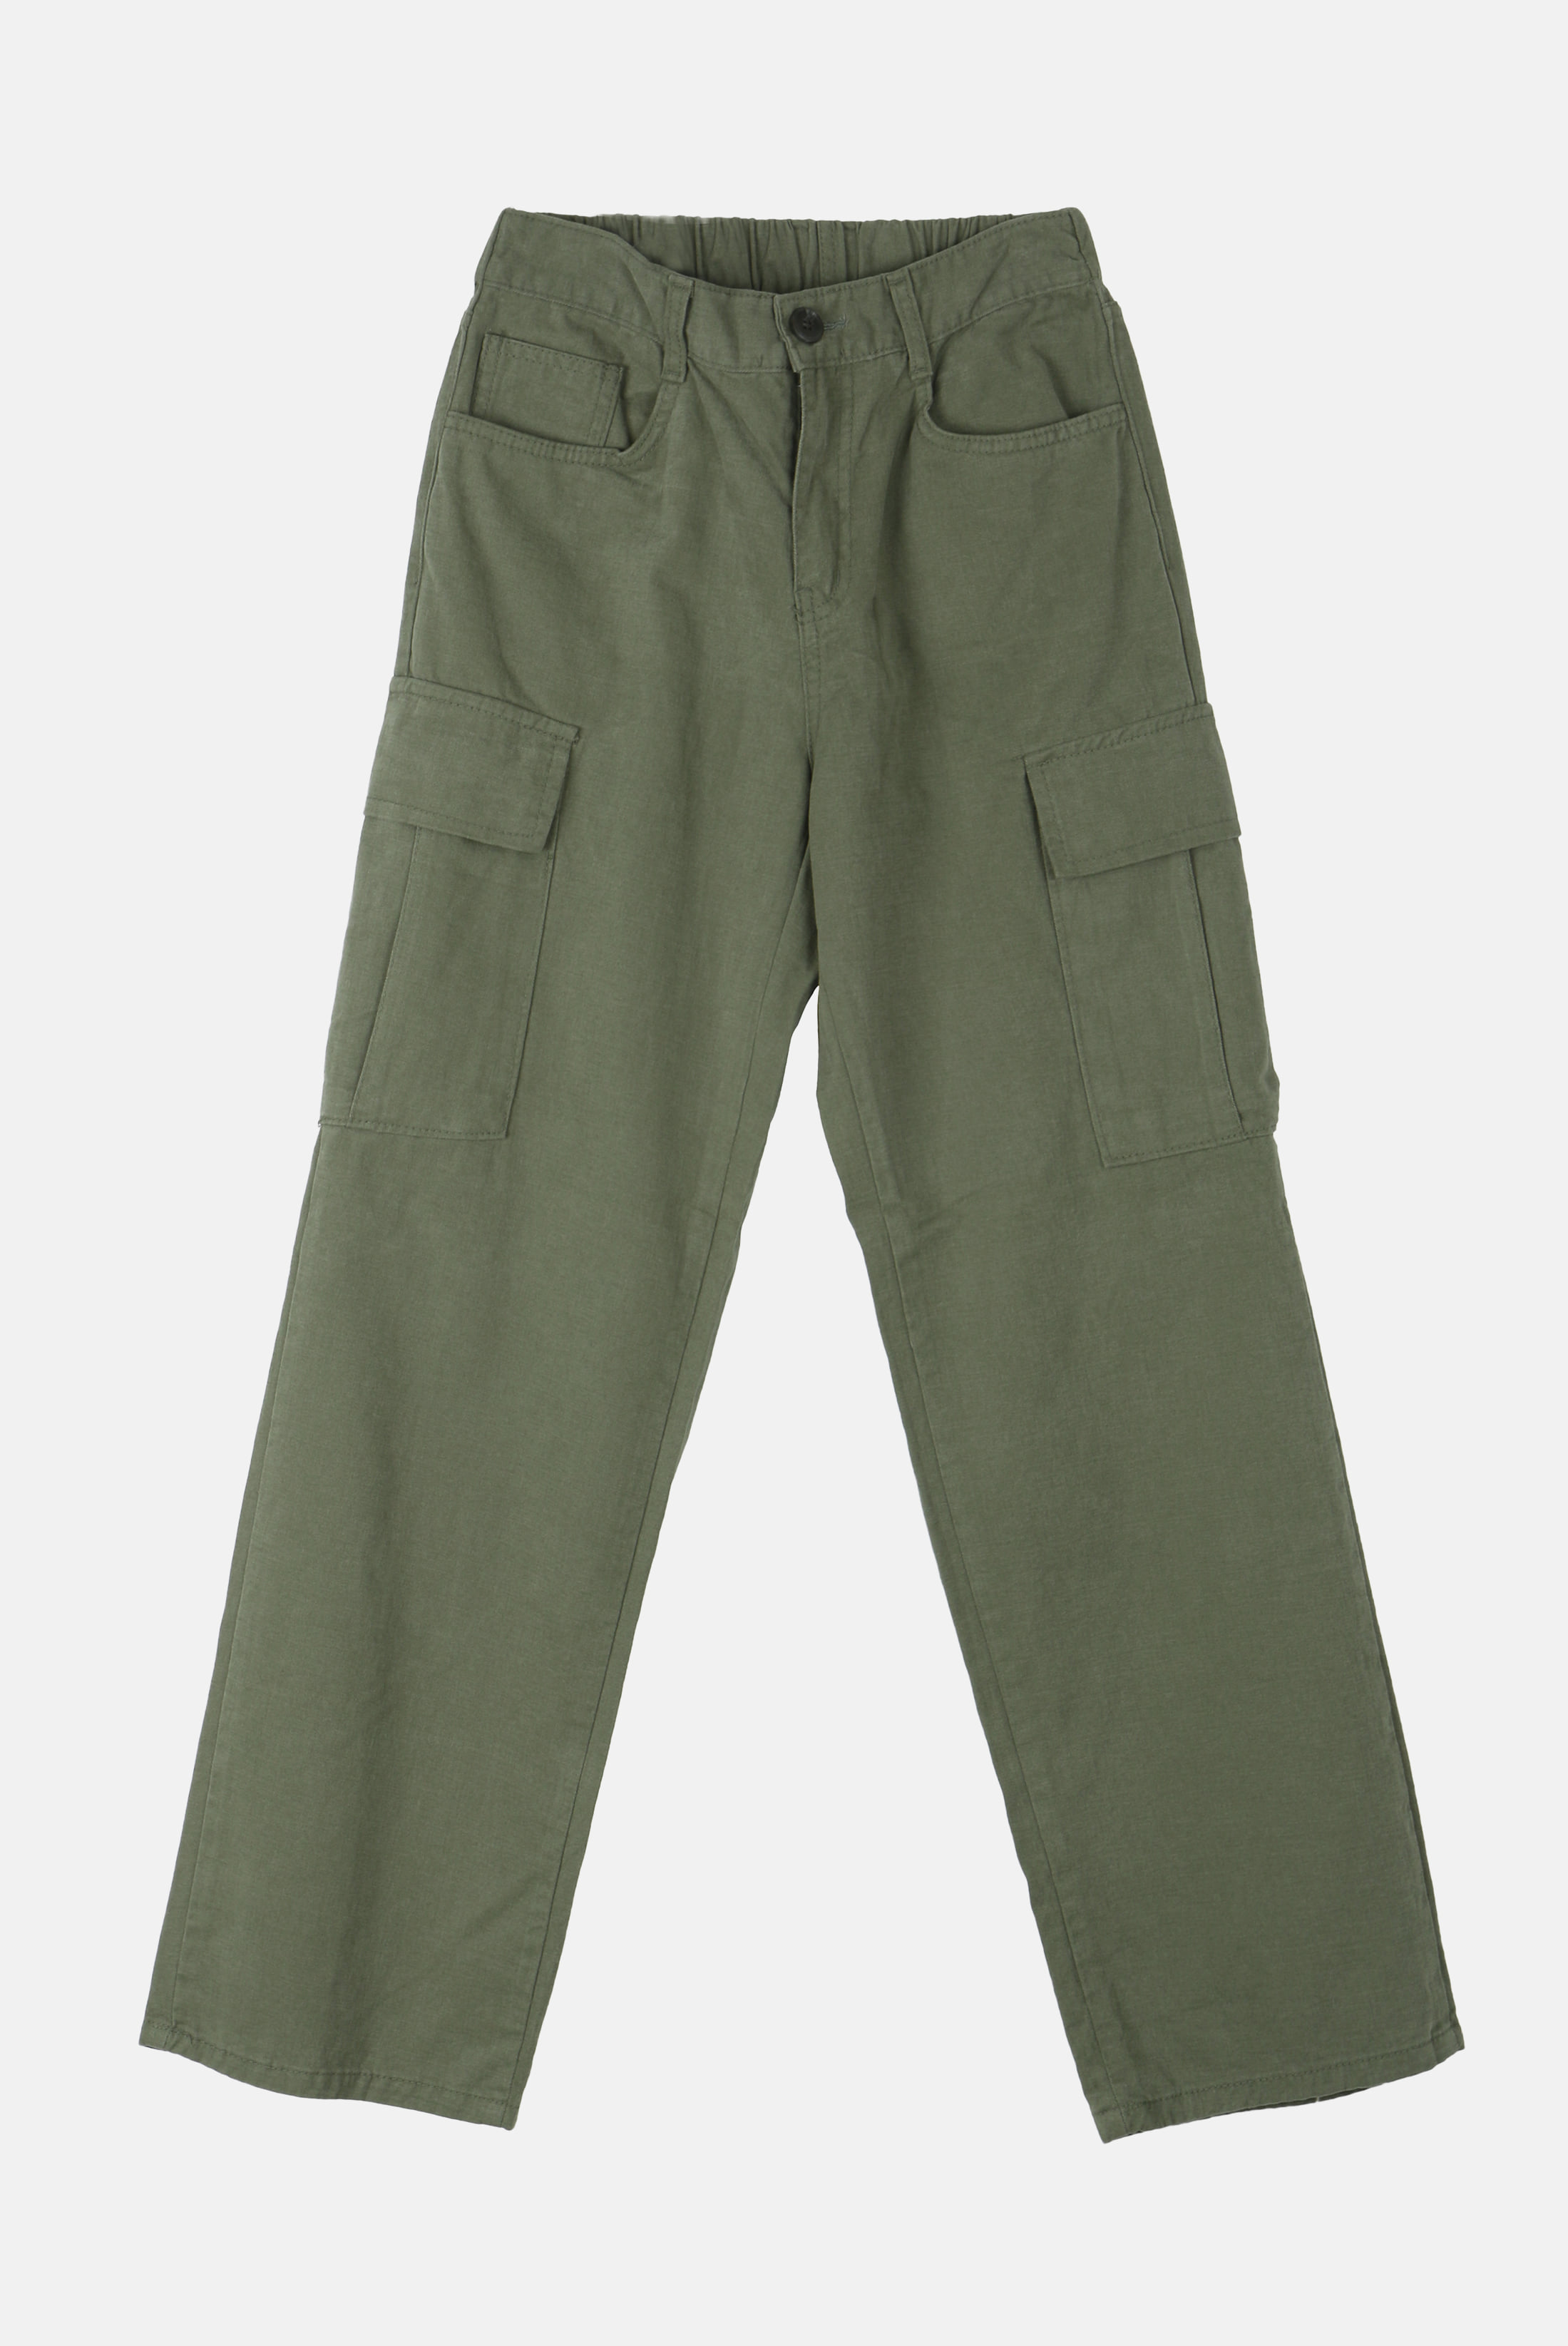 Winter_Cotton Cargo_Pants